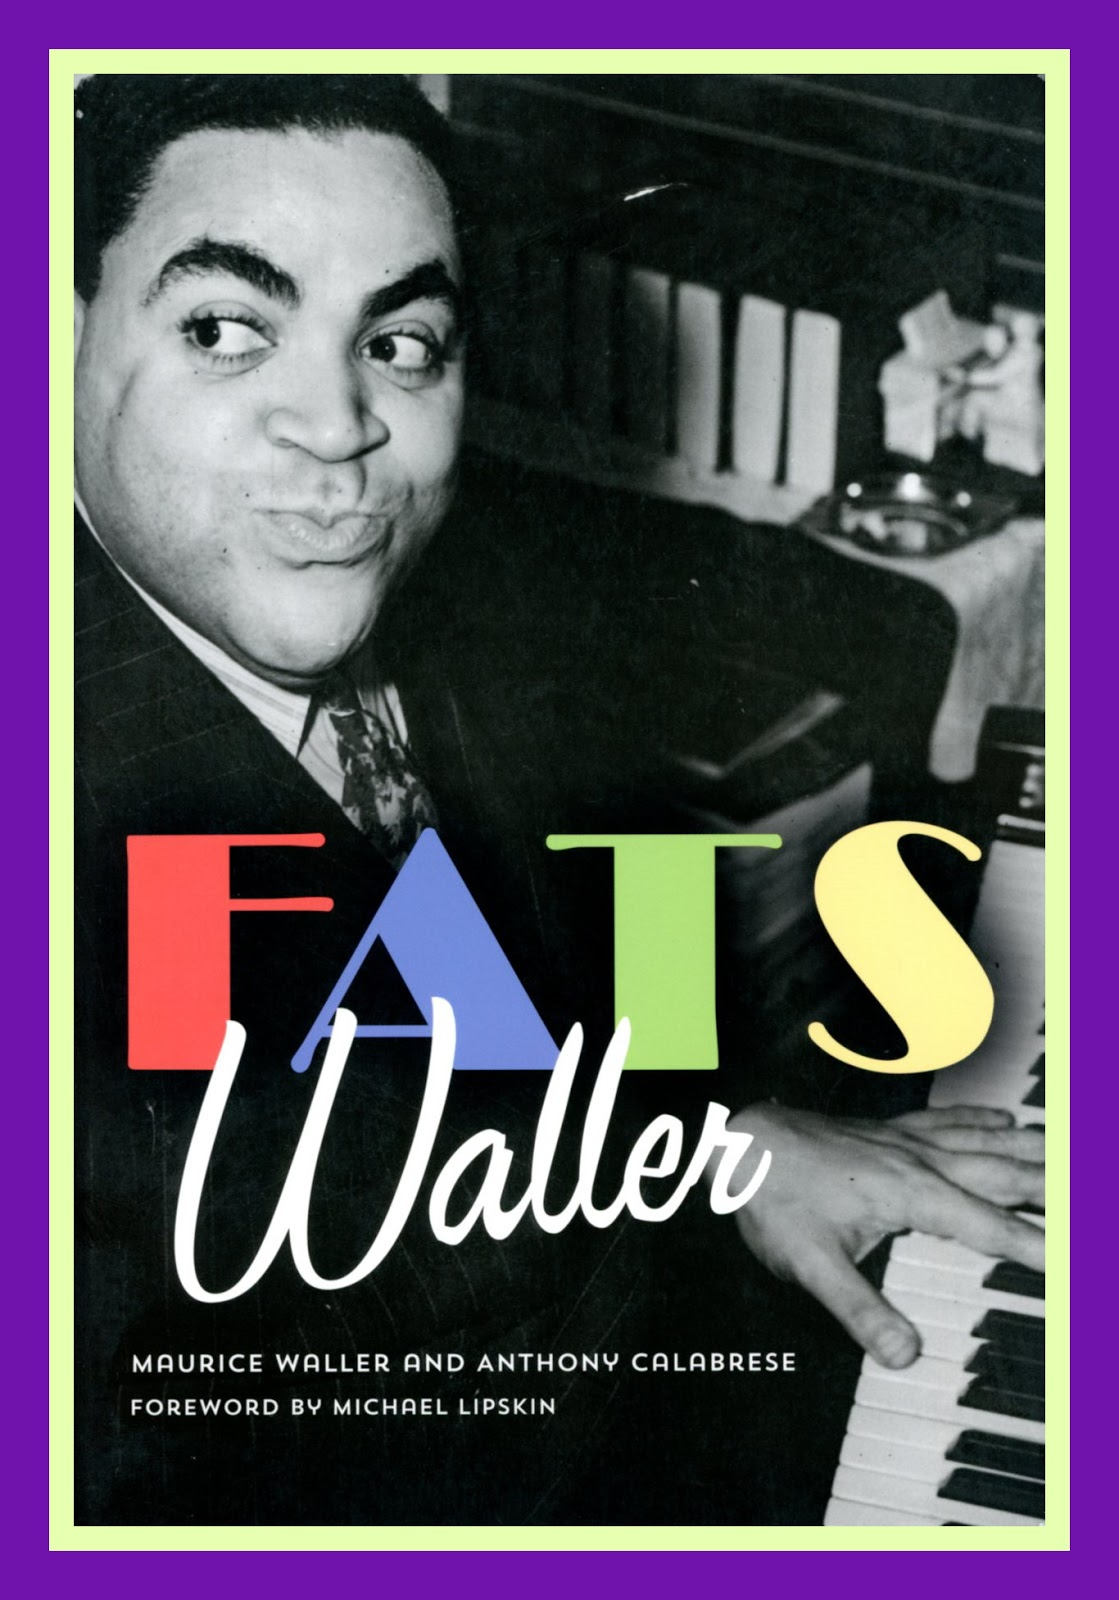 Jazz Profiles: A Biography of Fats Waller by Maurice ... Fats Waller Age